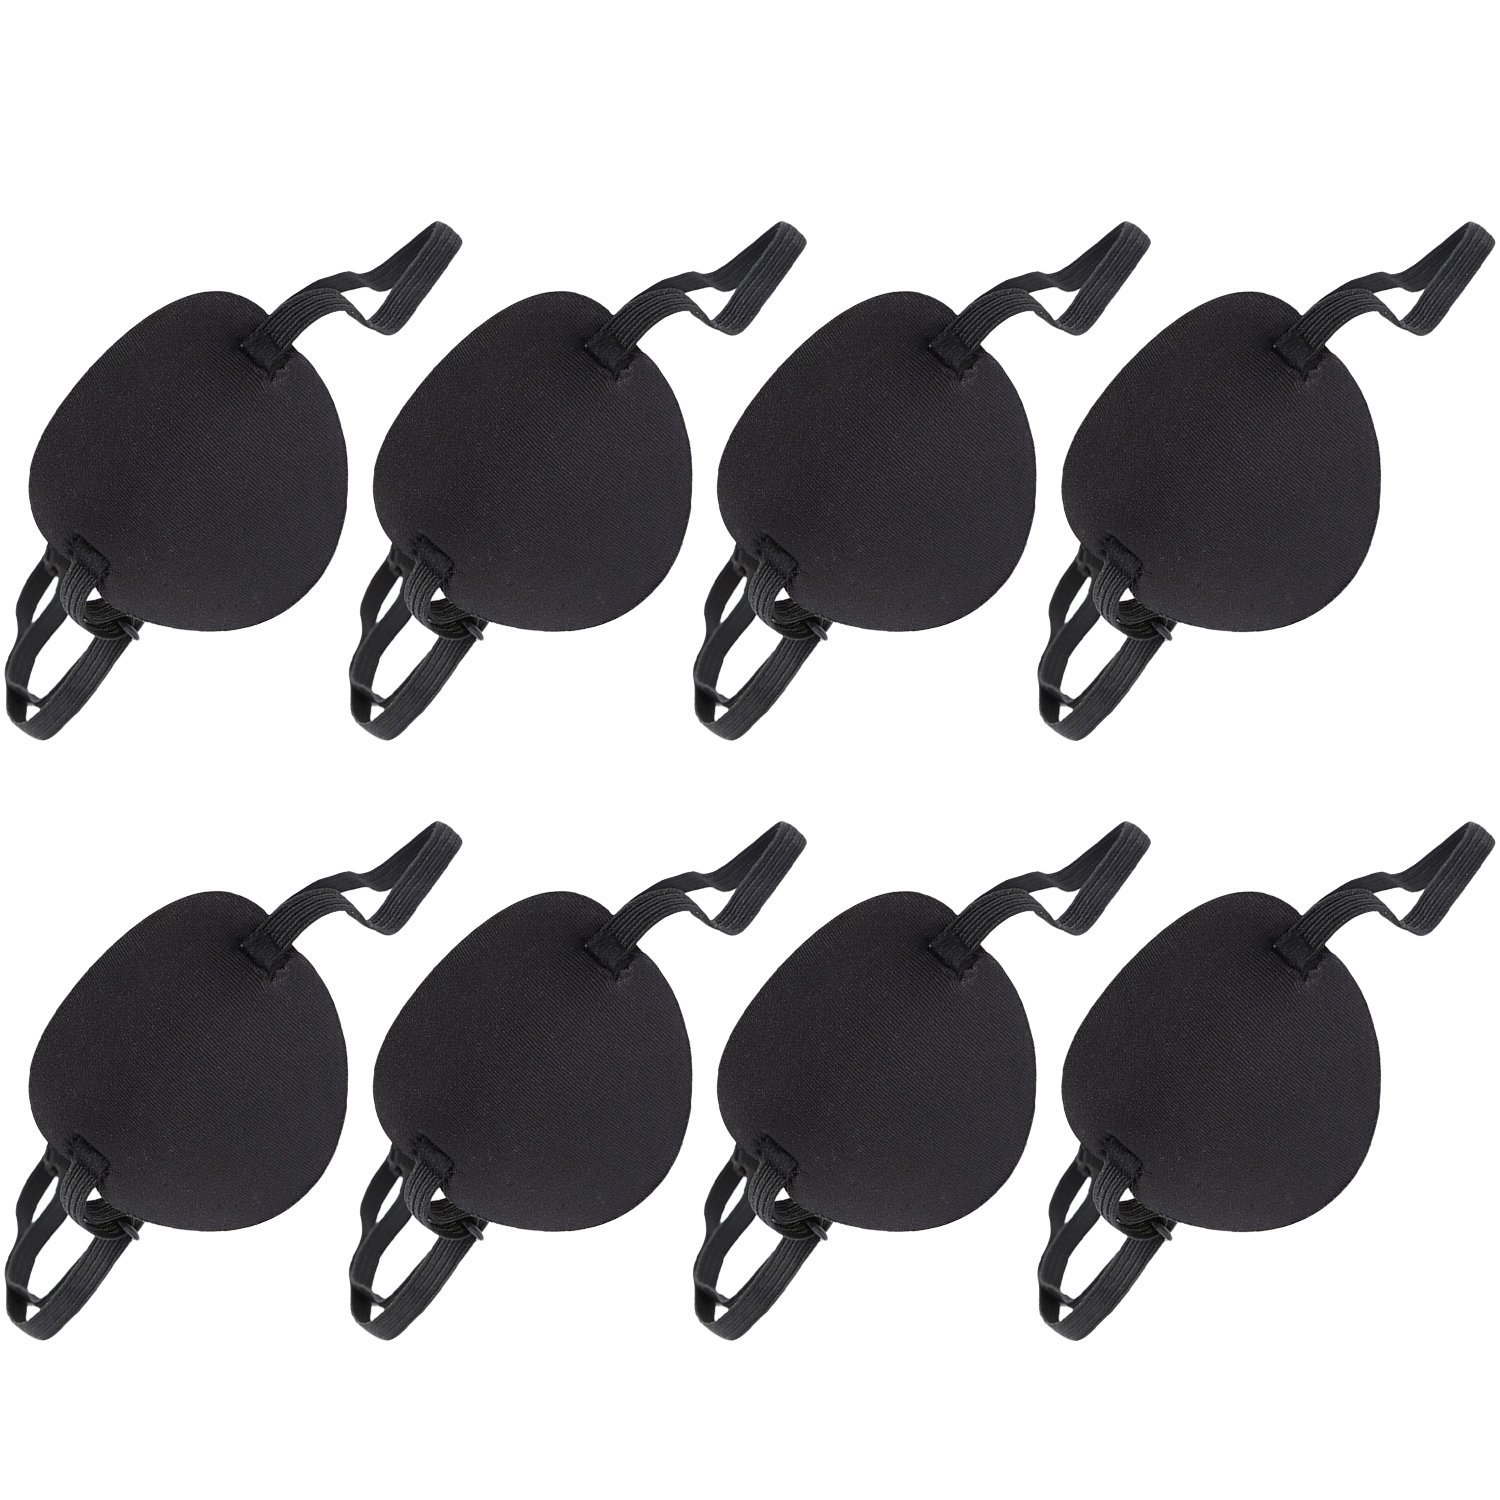 8 Pieces Adjustable Sponge Eye Patch Strabismus Eye Mask with Buckle for Adults and Kids, Black Boao